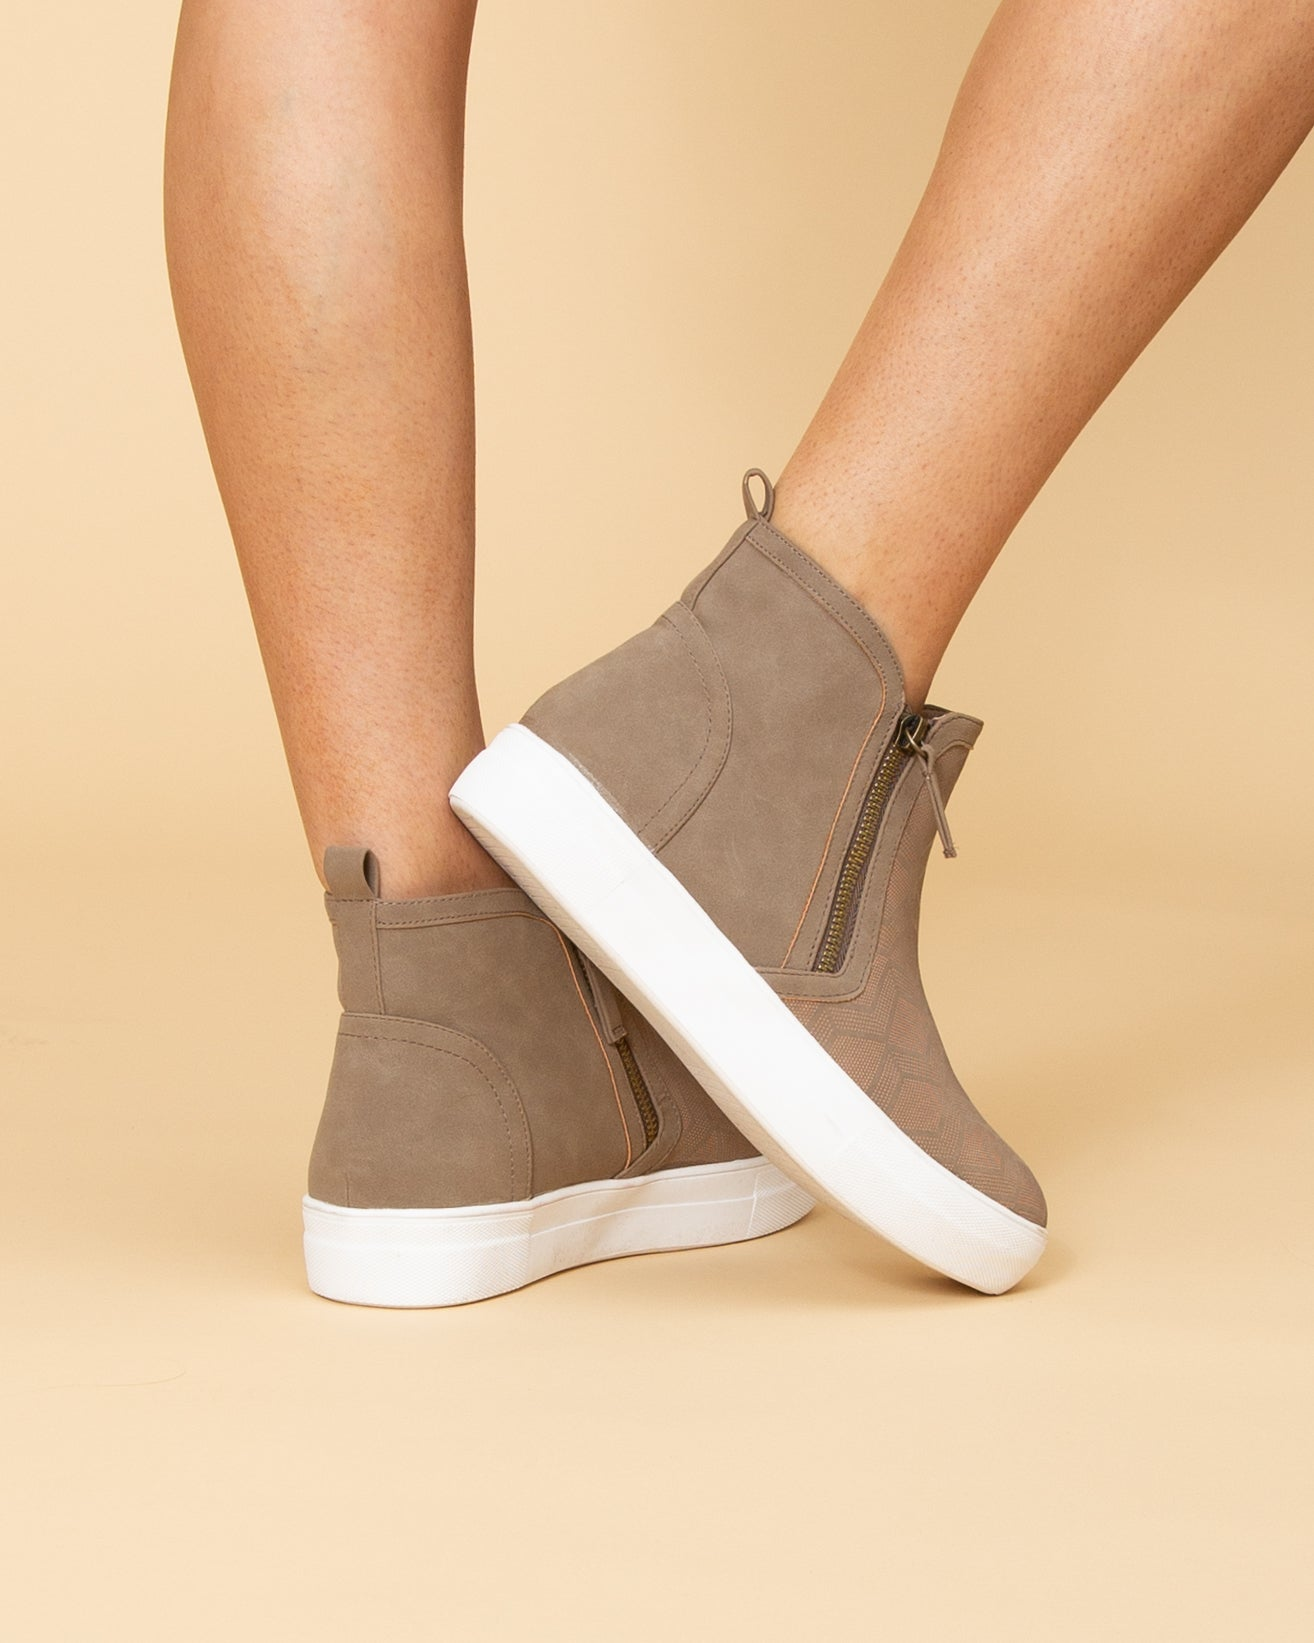 Not Rated Allison Side Zip Slip Ons - Taupe - Eleven Oaks Boutique 2ce930a54